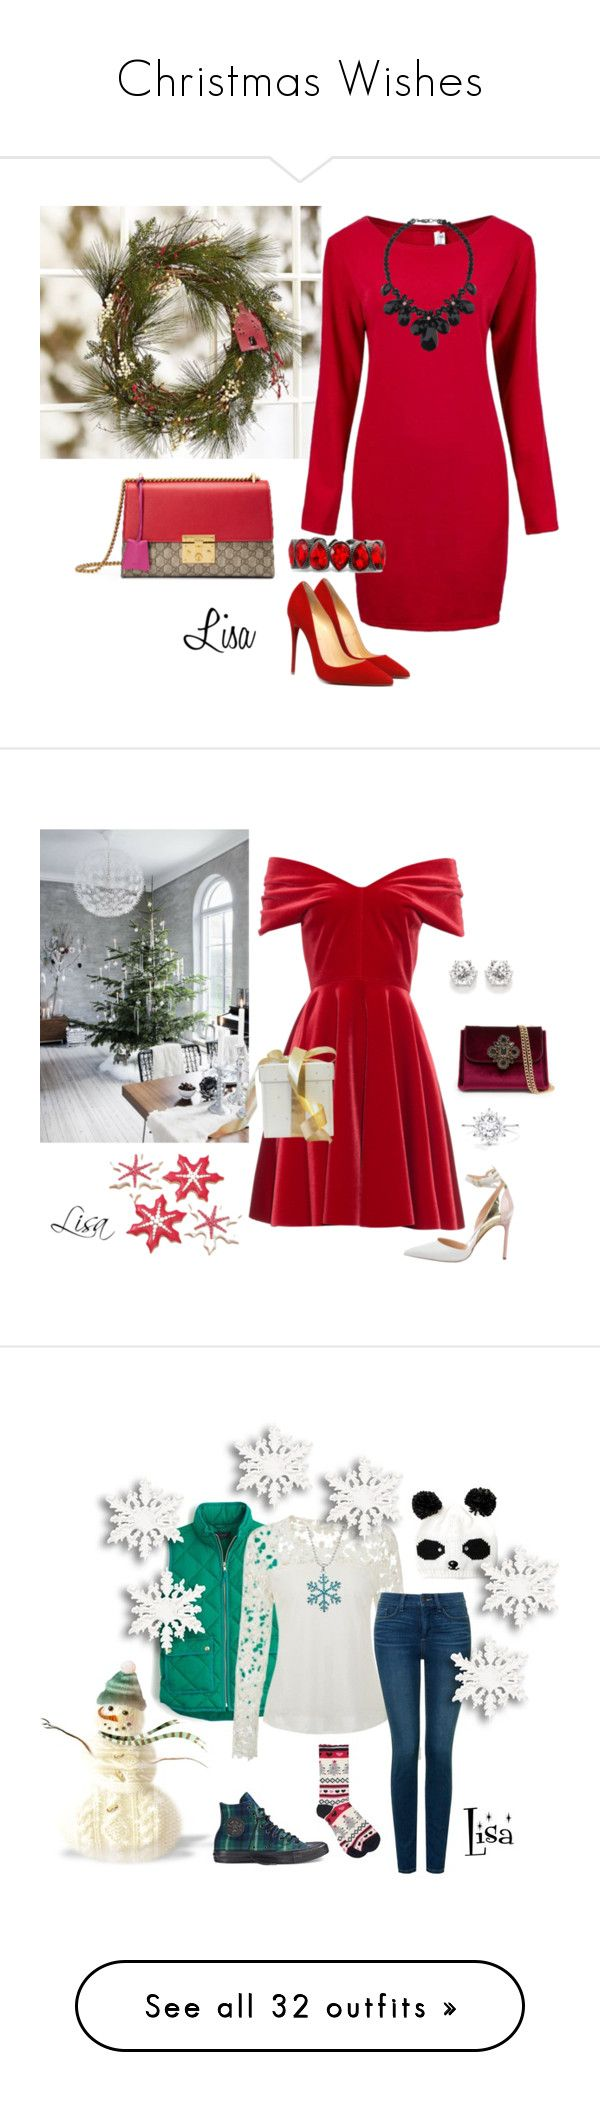 """""""Christmas Wishes"""" by coolmommy44 ❤ liked on Polyvore featuring Pottery Barn, Gucci, Wallis, Emilio De La Morena, Bebe, Manolo Blahnik, J.Crew, NYDJ, Converse and M&Co"""